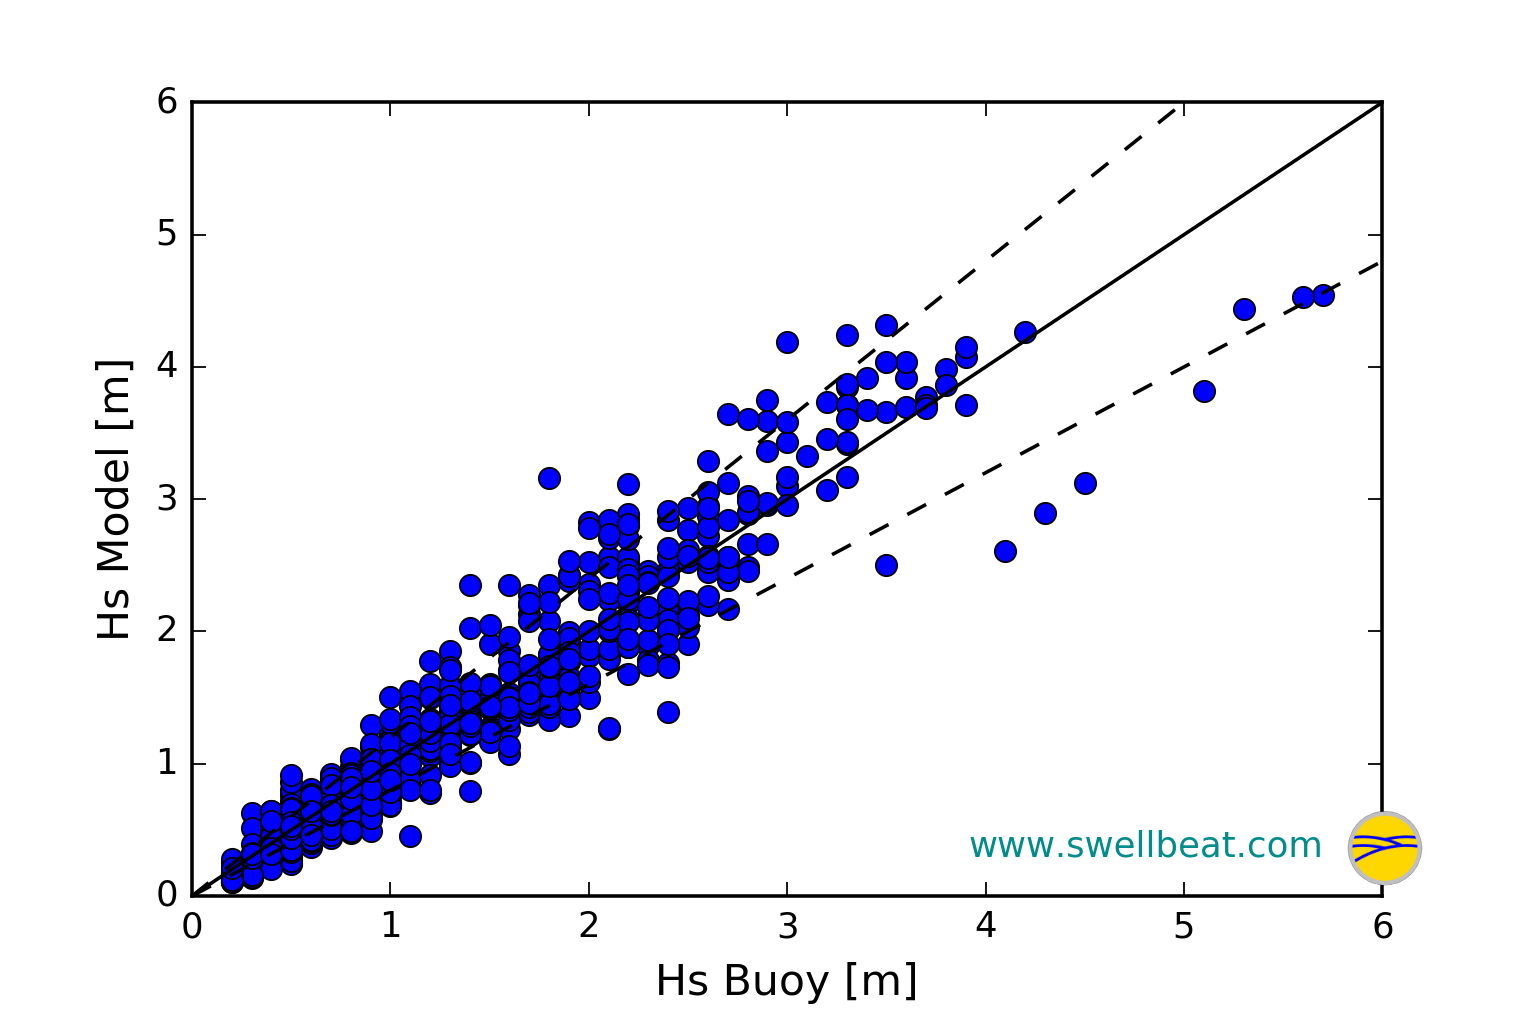 Observed versus predicted significant wave heigth